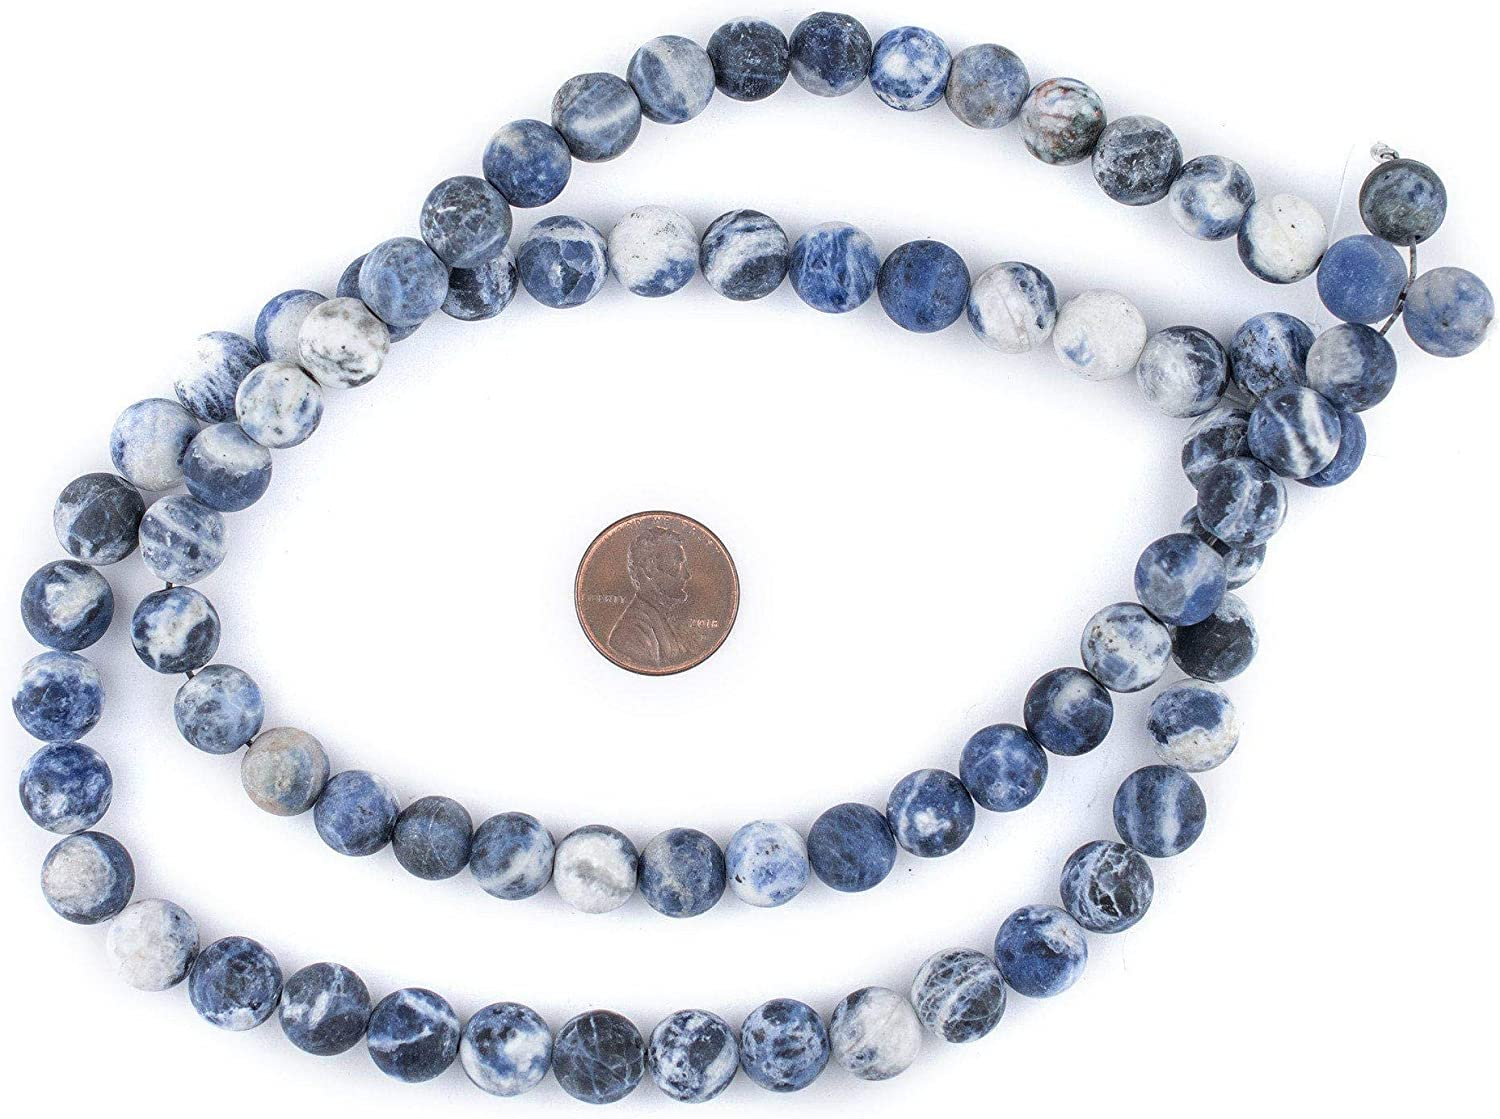 10 or 12 MM Smooth Round Beads Natural Gemstone Beads Ship within 24 Hr from USA 8 Full Strand Sodalite 6 G2701W22272832MS-BH:6,10mm